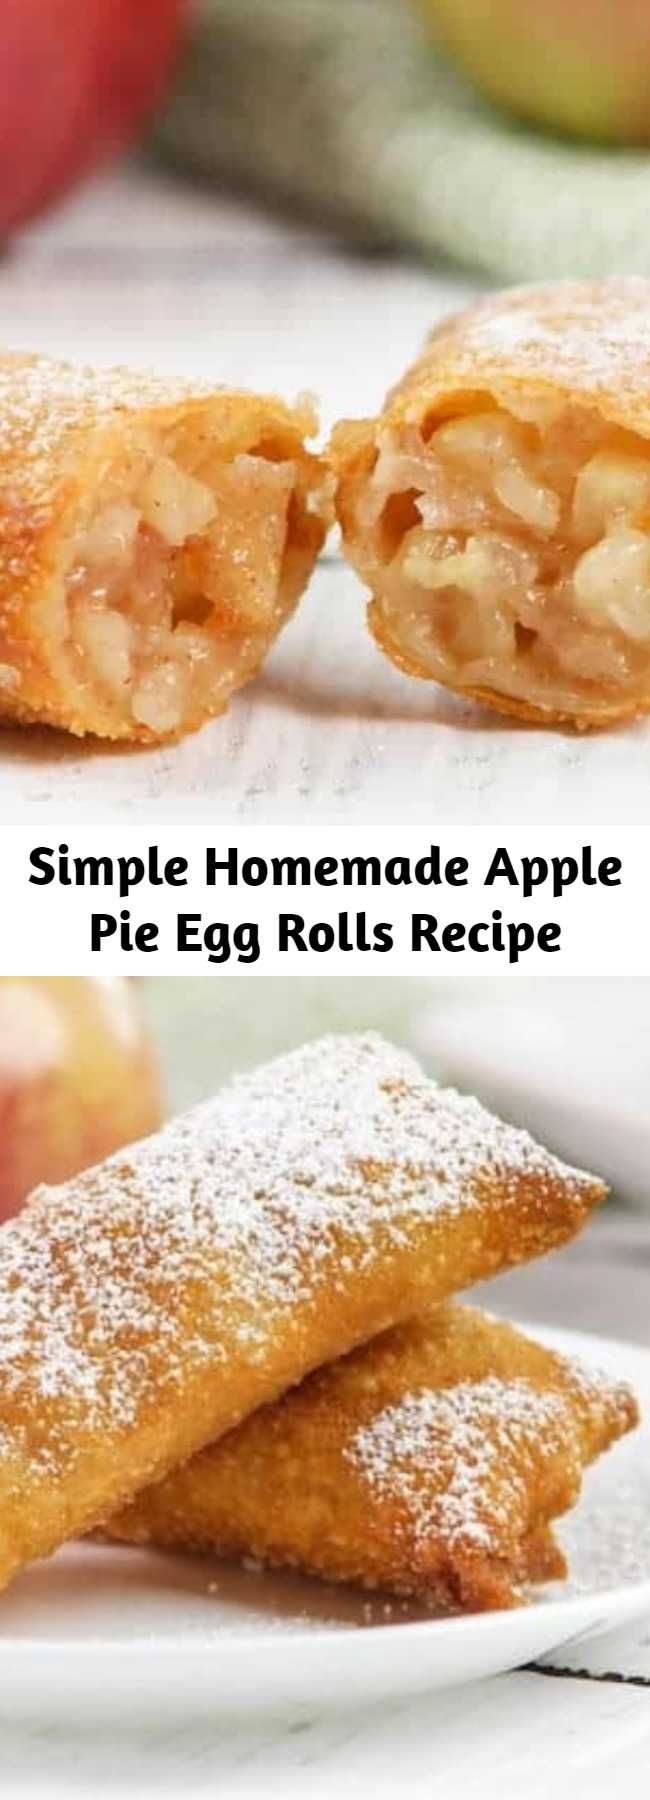 Simple Homemade Apple Pie Egg Rolls Recipe - These yummy little bundles are filled with a simple homemade cinnamon apple filling, deep fried golden brown and kissed with cinnamon.